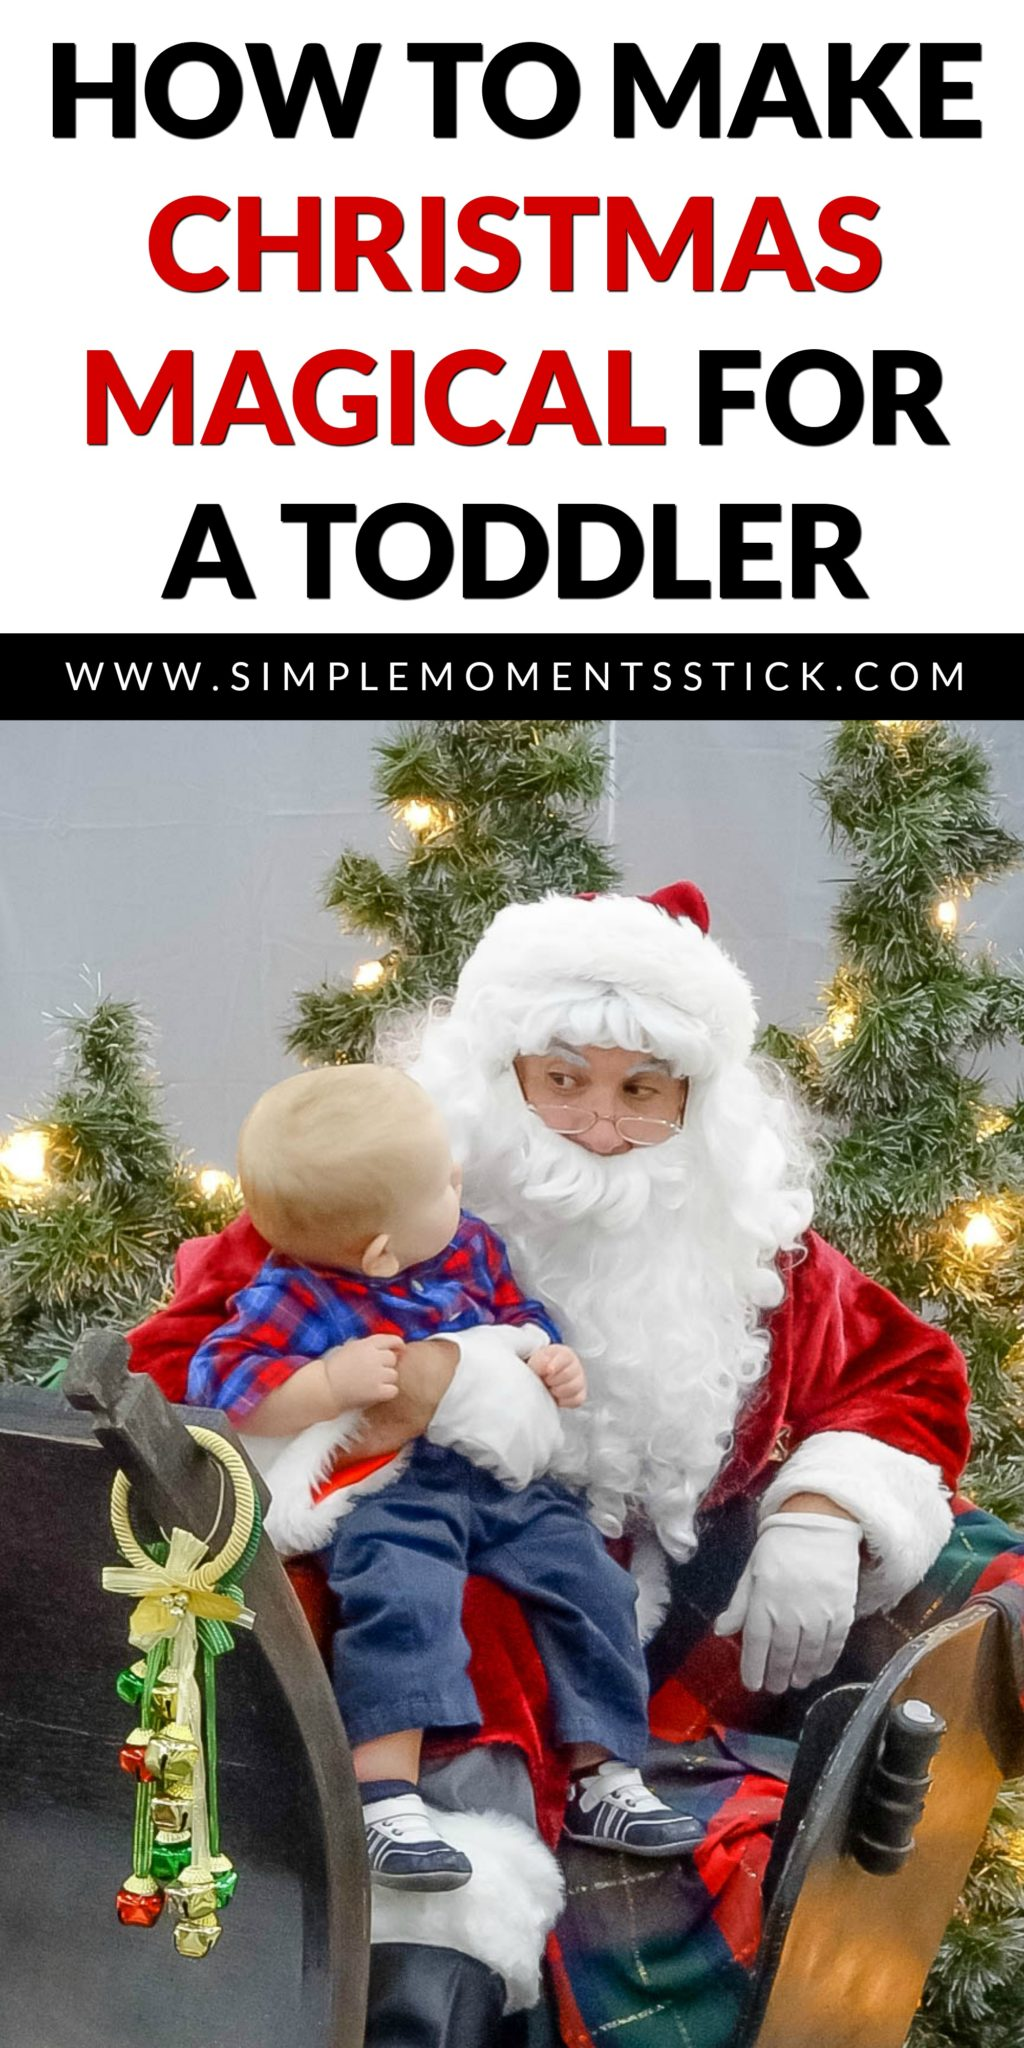 Christmas with a toddler can get crazy. Thankfully, there are tons of things you can do to keep your sanity and allow your kiddo to have fun all season long!